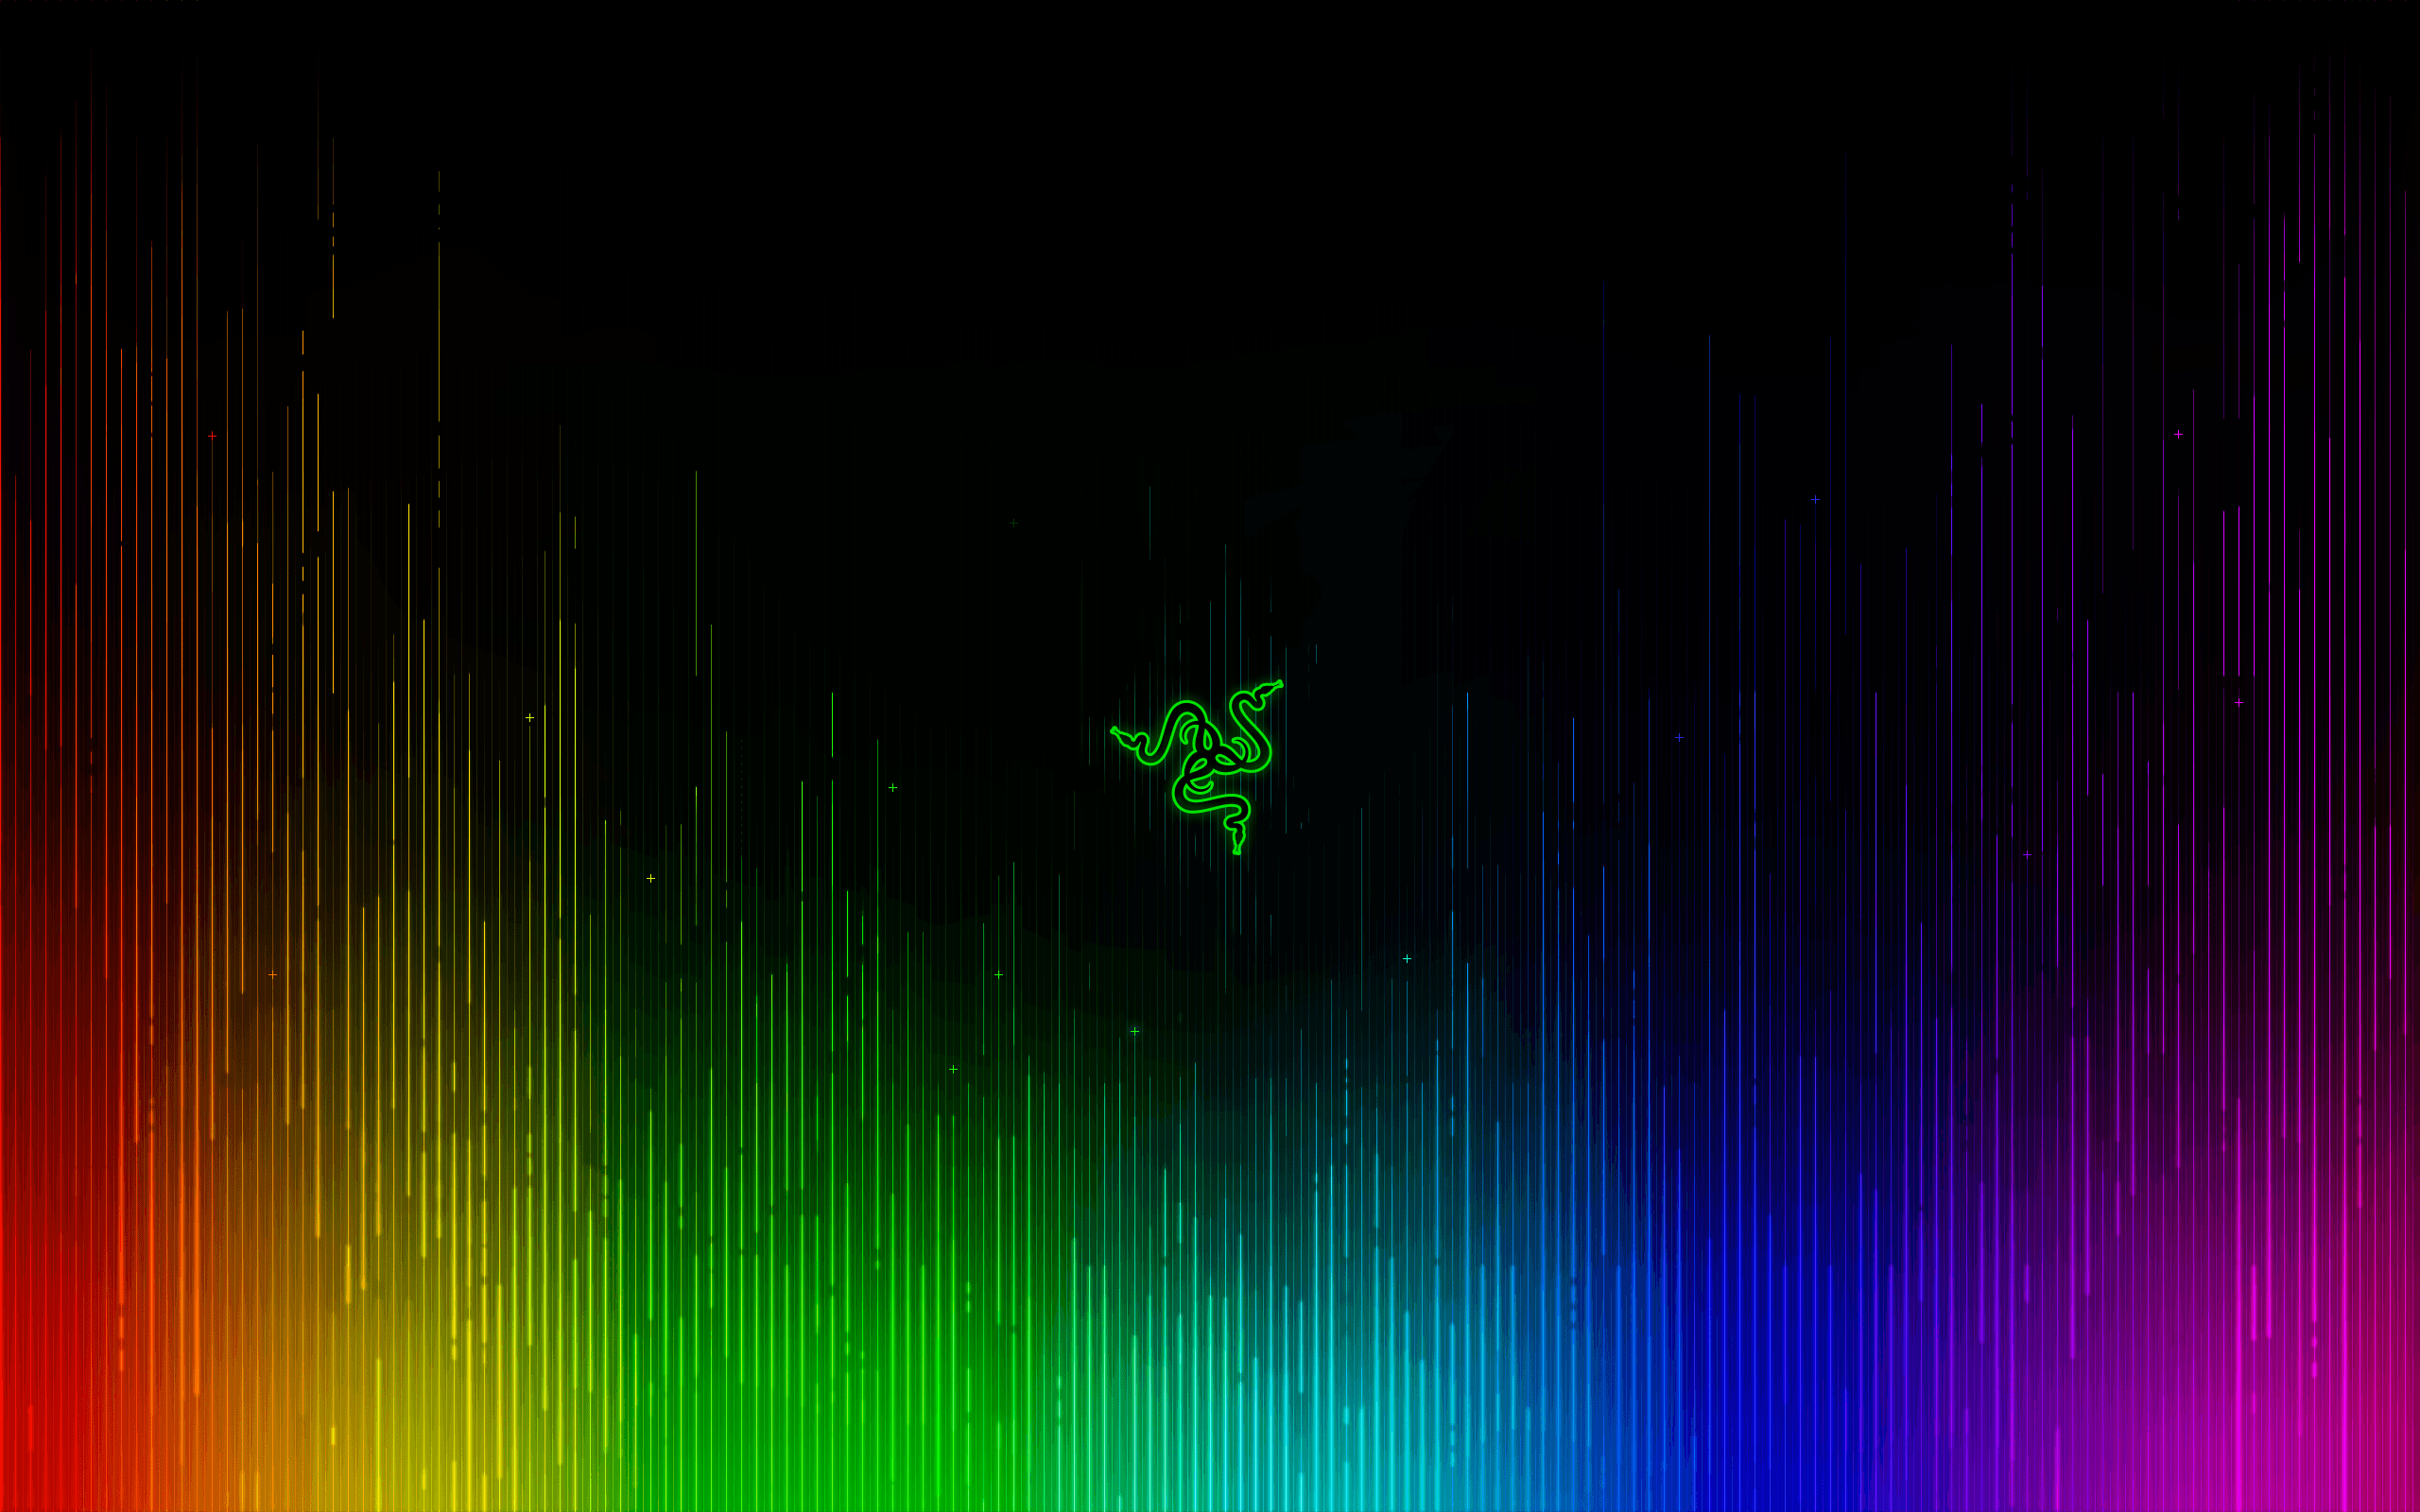 Razer Chroma Wallpaper, 48 High Quality Razer Chroma Wallpapers .